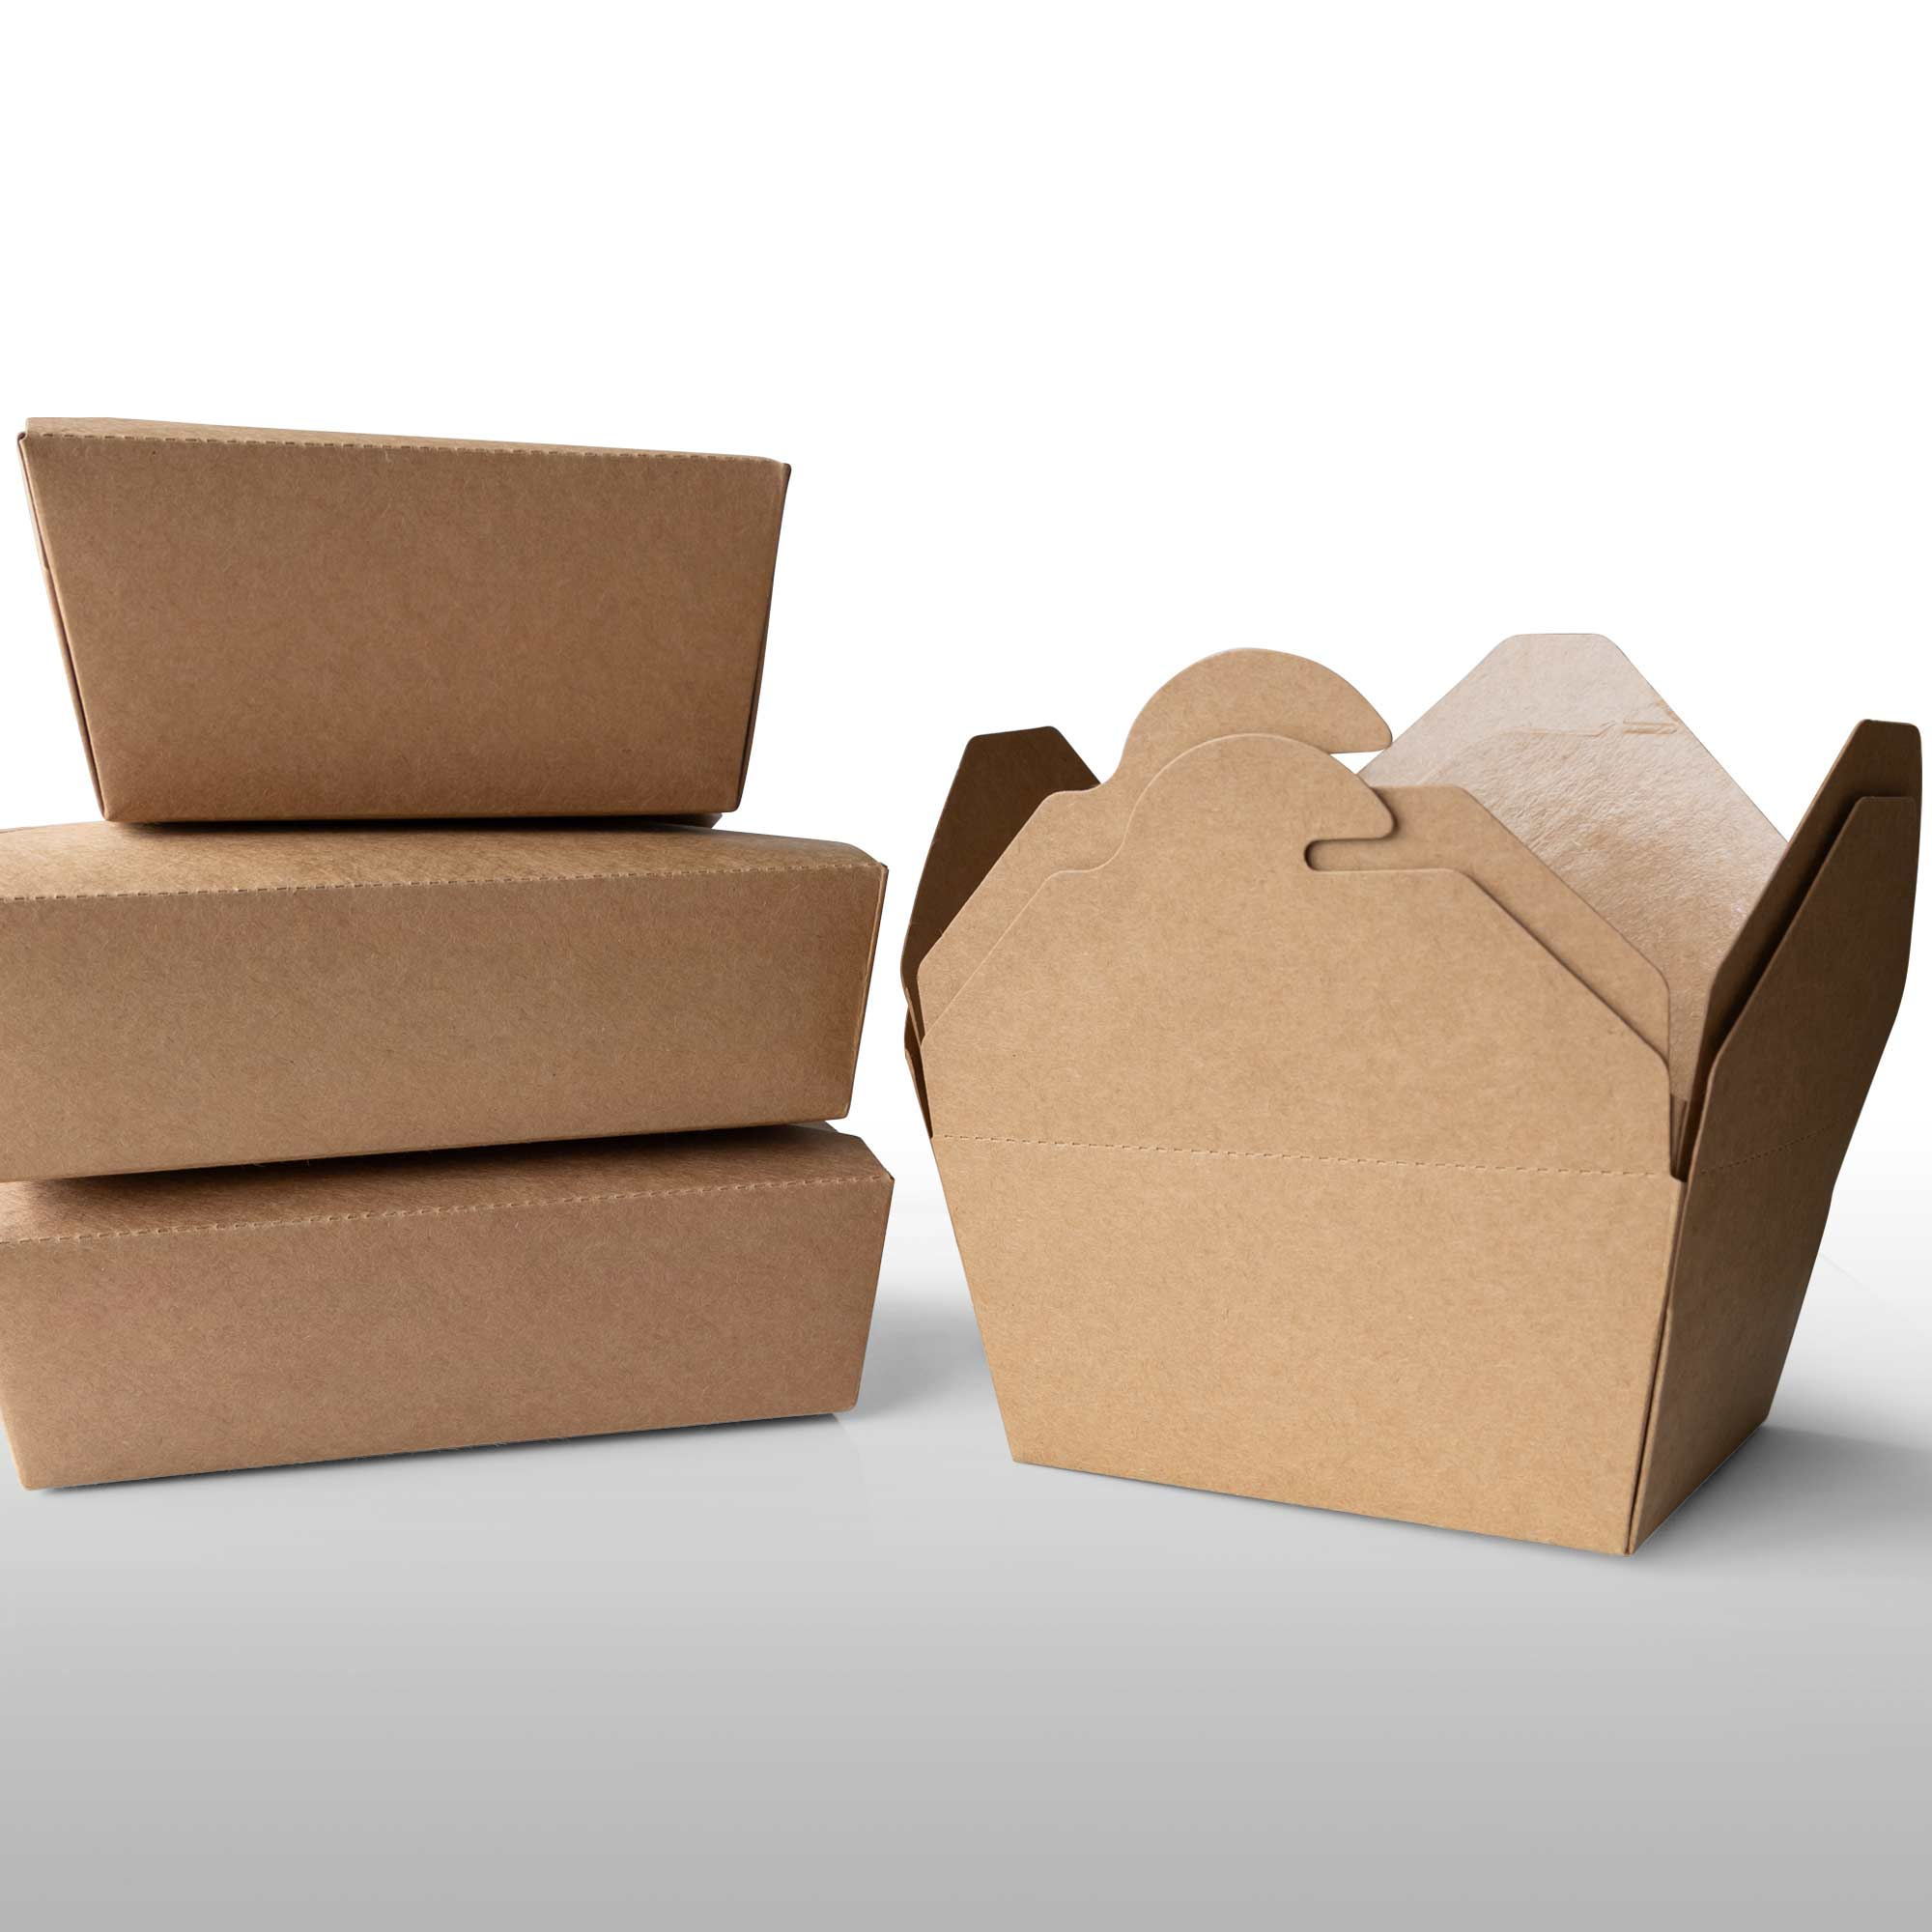 Paper Container - Paper Meal Box, Soup Container